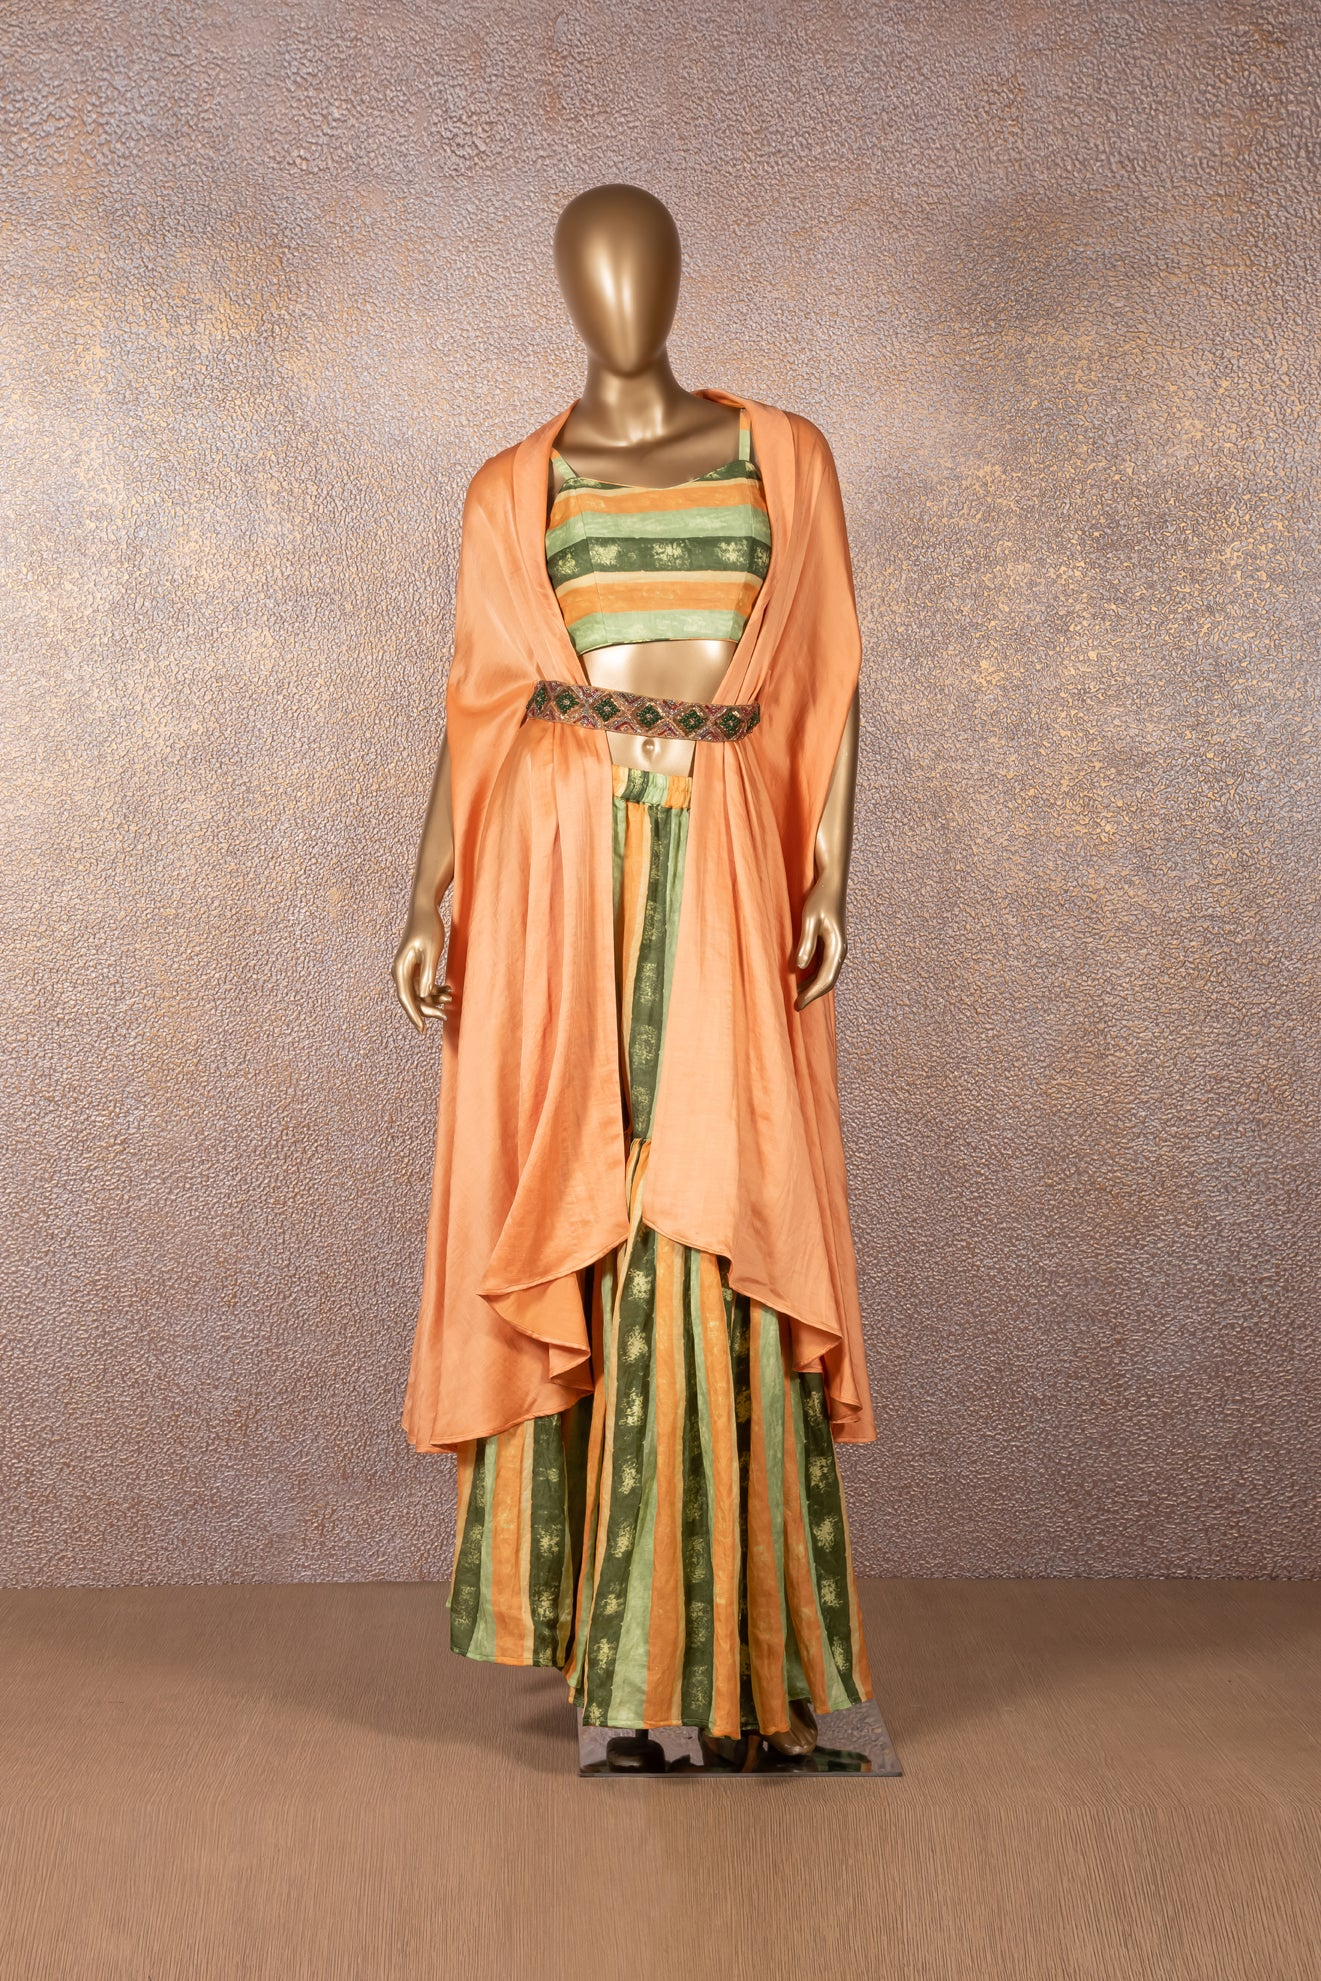 Printed Sharara & Bustier with Apricot Jacket & Embellished Belt